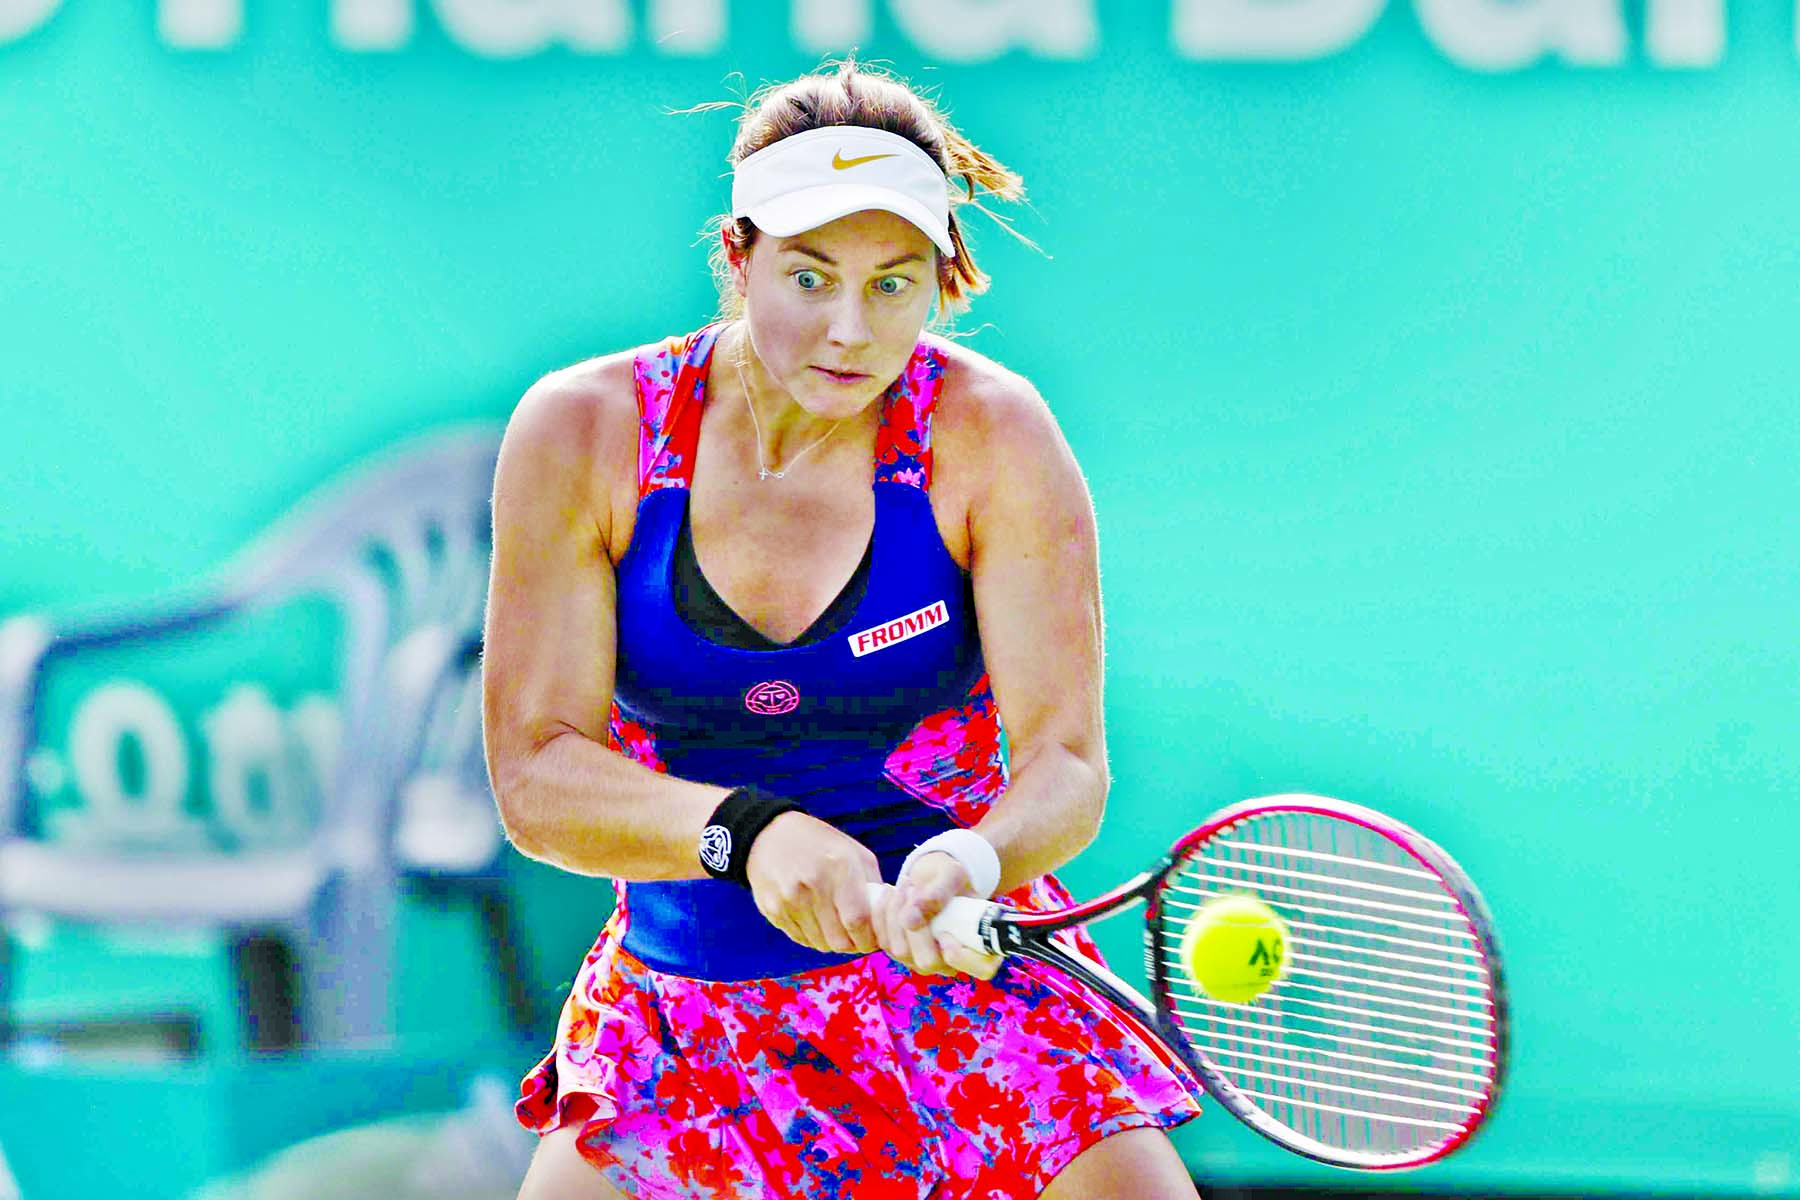 Stefanie Voegele of Switzerland, returns a shot to Ajla Tomljanovic of Australia, during their first round match of the Korea Open tennis championships in Seoul, South Korea on Tuesday.